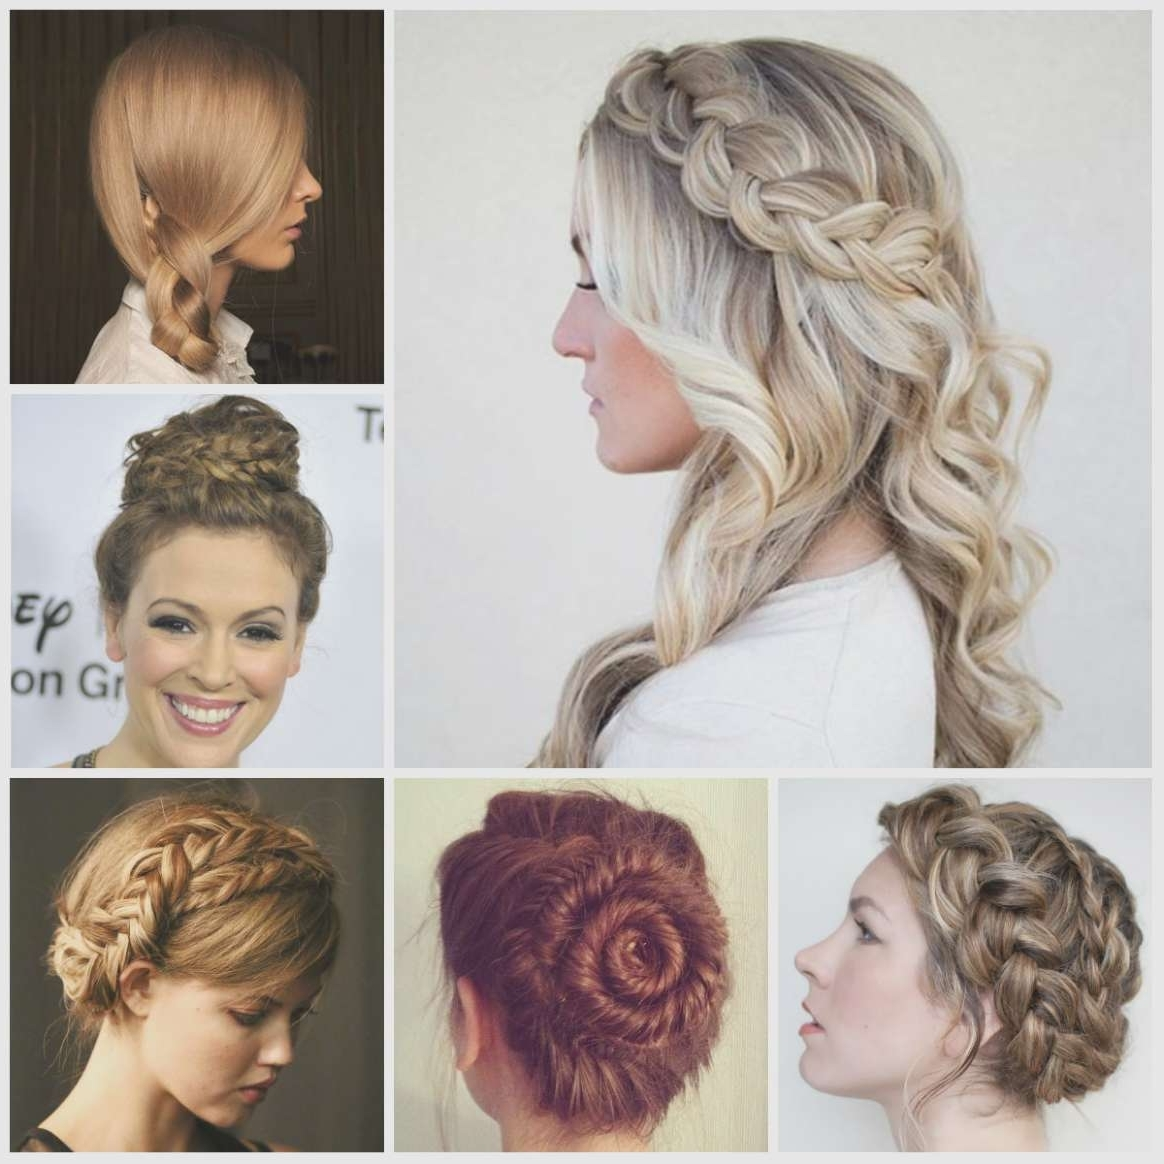 Elegant Braided Hairstyles Braided Hairstyles For 2017 – Gulfsource For Preferred Elegant Braid Hairstyles (Gallery 14 of 15)